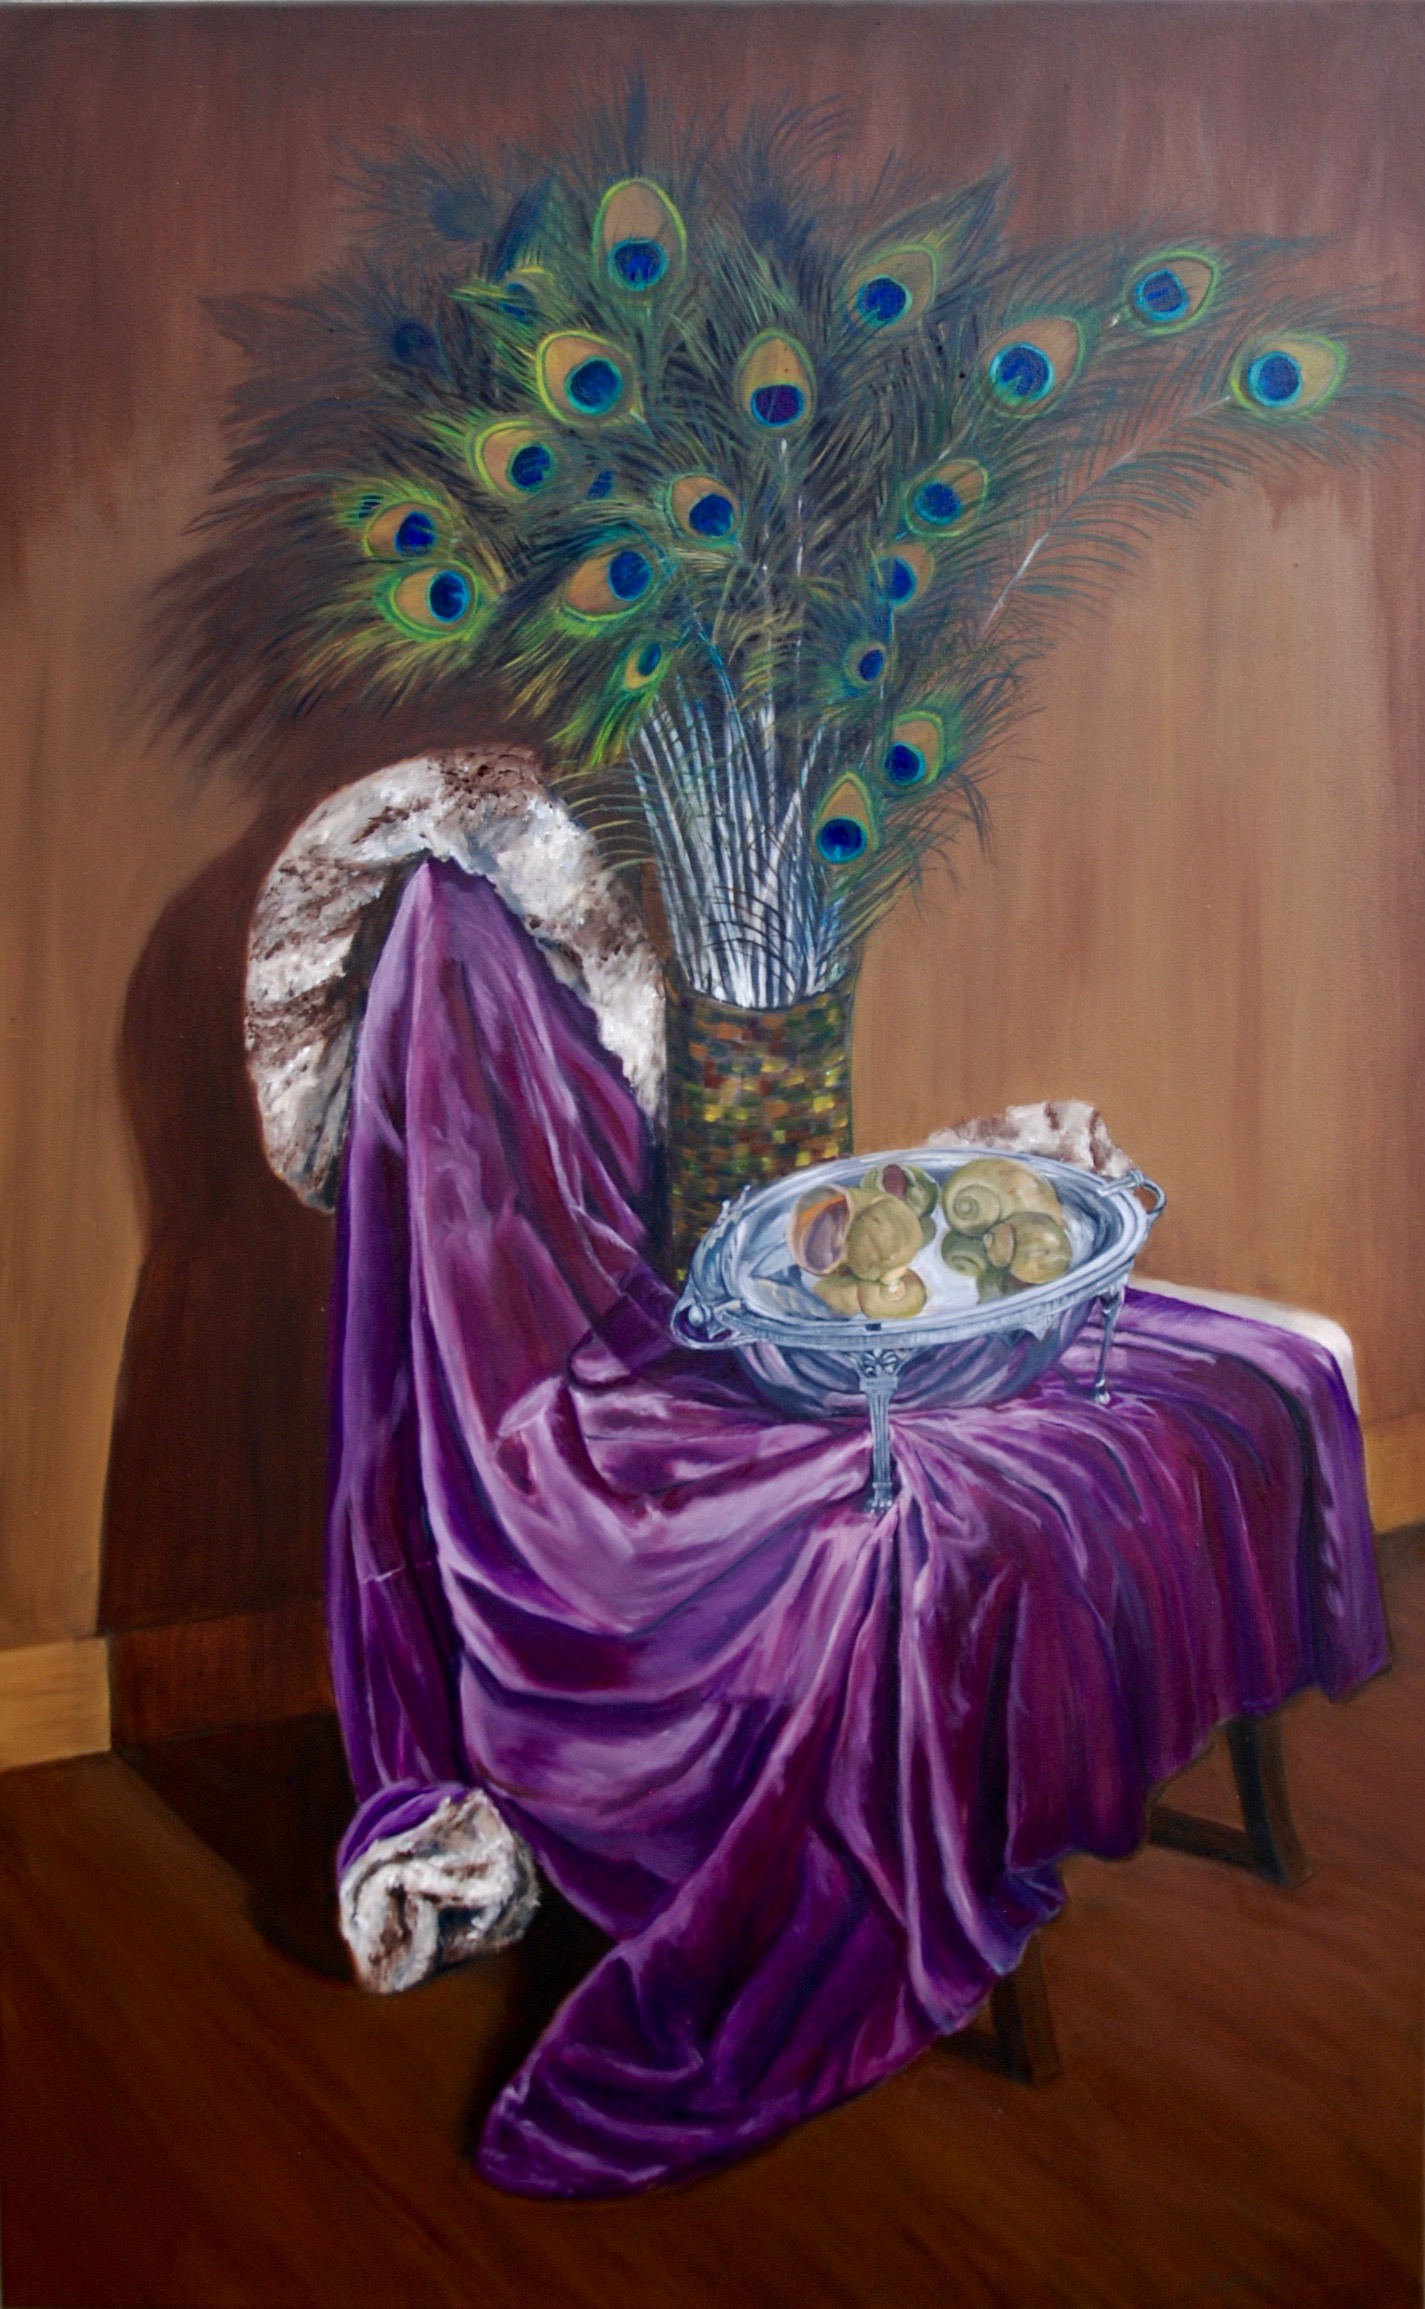 A Study in Textures / Still Life with Purple Velvet Coat  oil on canvas; 48 x 30; 2016  $800.00